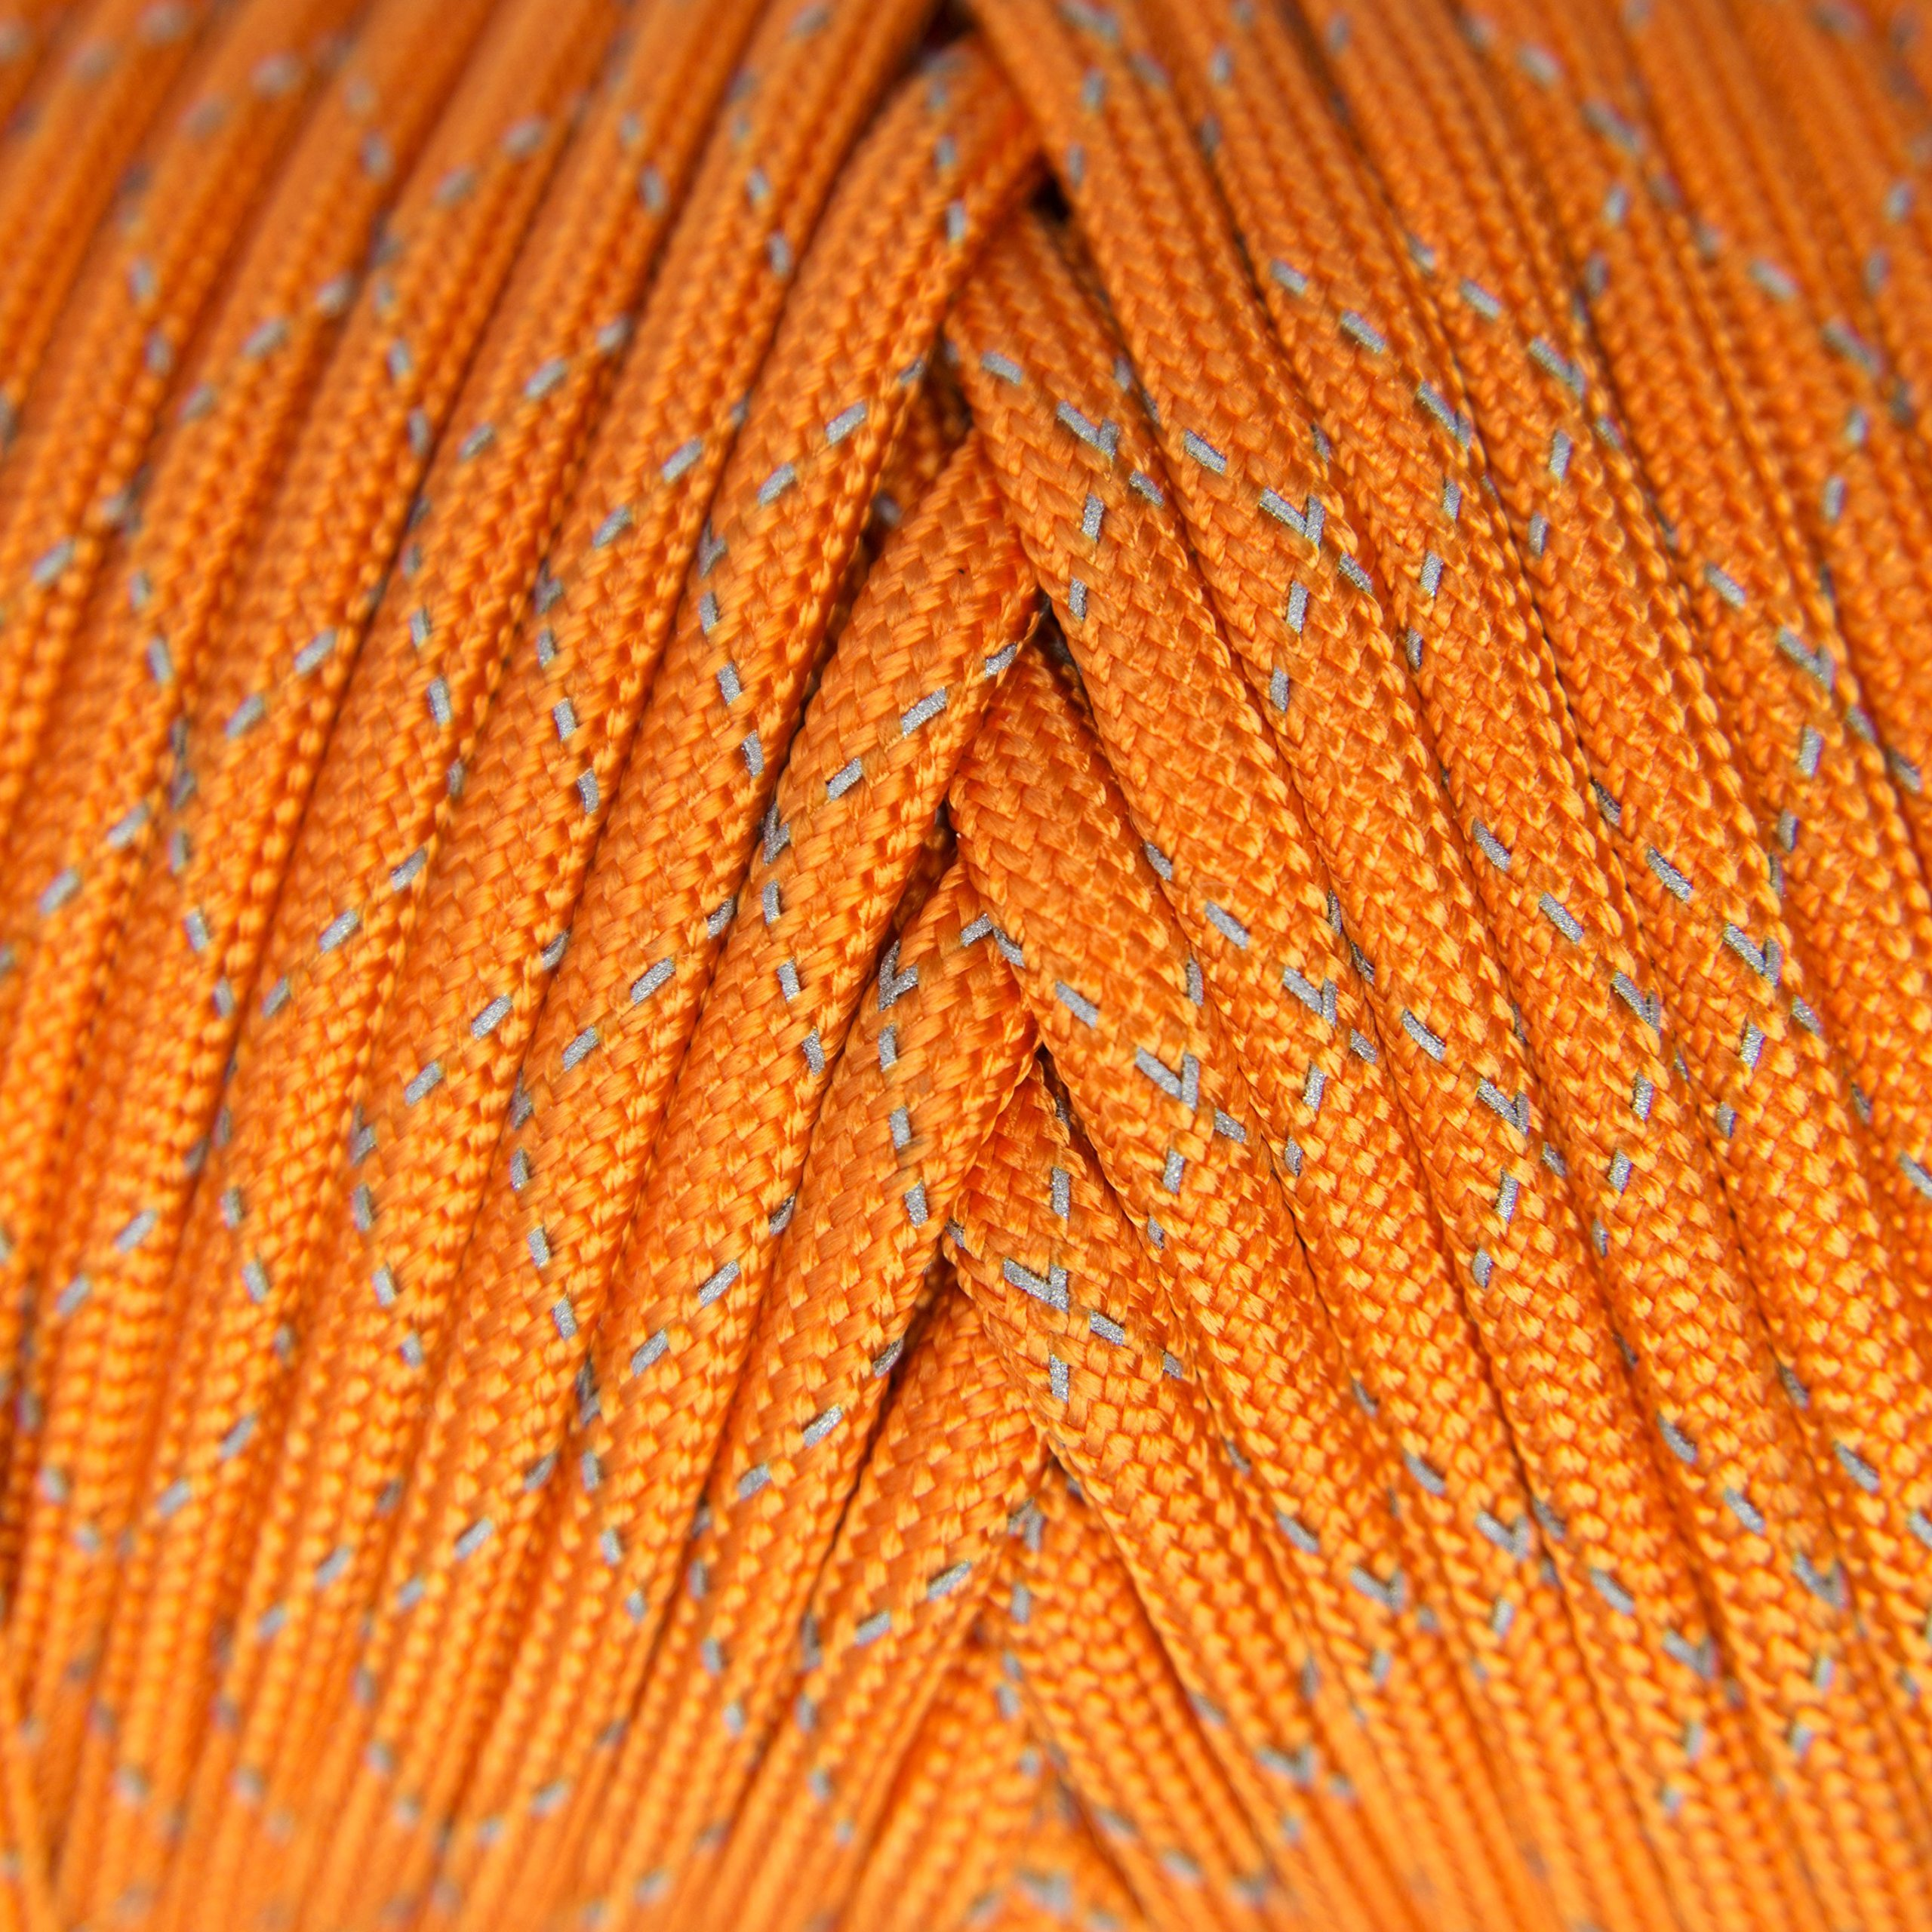 TOUGH-GRID New 700lb Double-Reflective Paracord/Parachute Cord - 2 Vibrant Retro-Reflective Strands for The Ultimate High-Visibility Cord - 100% Nylon - Made in USA - 100Ft. Neon Orange Reflective by TOUGH-GRID (Image #3)